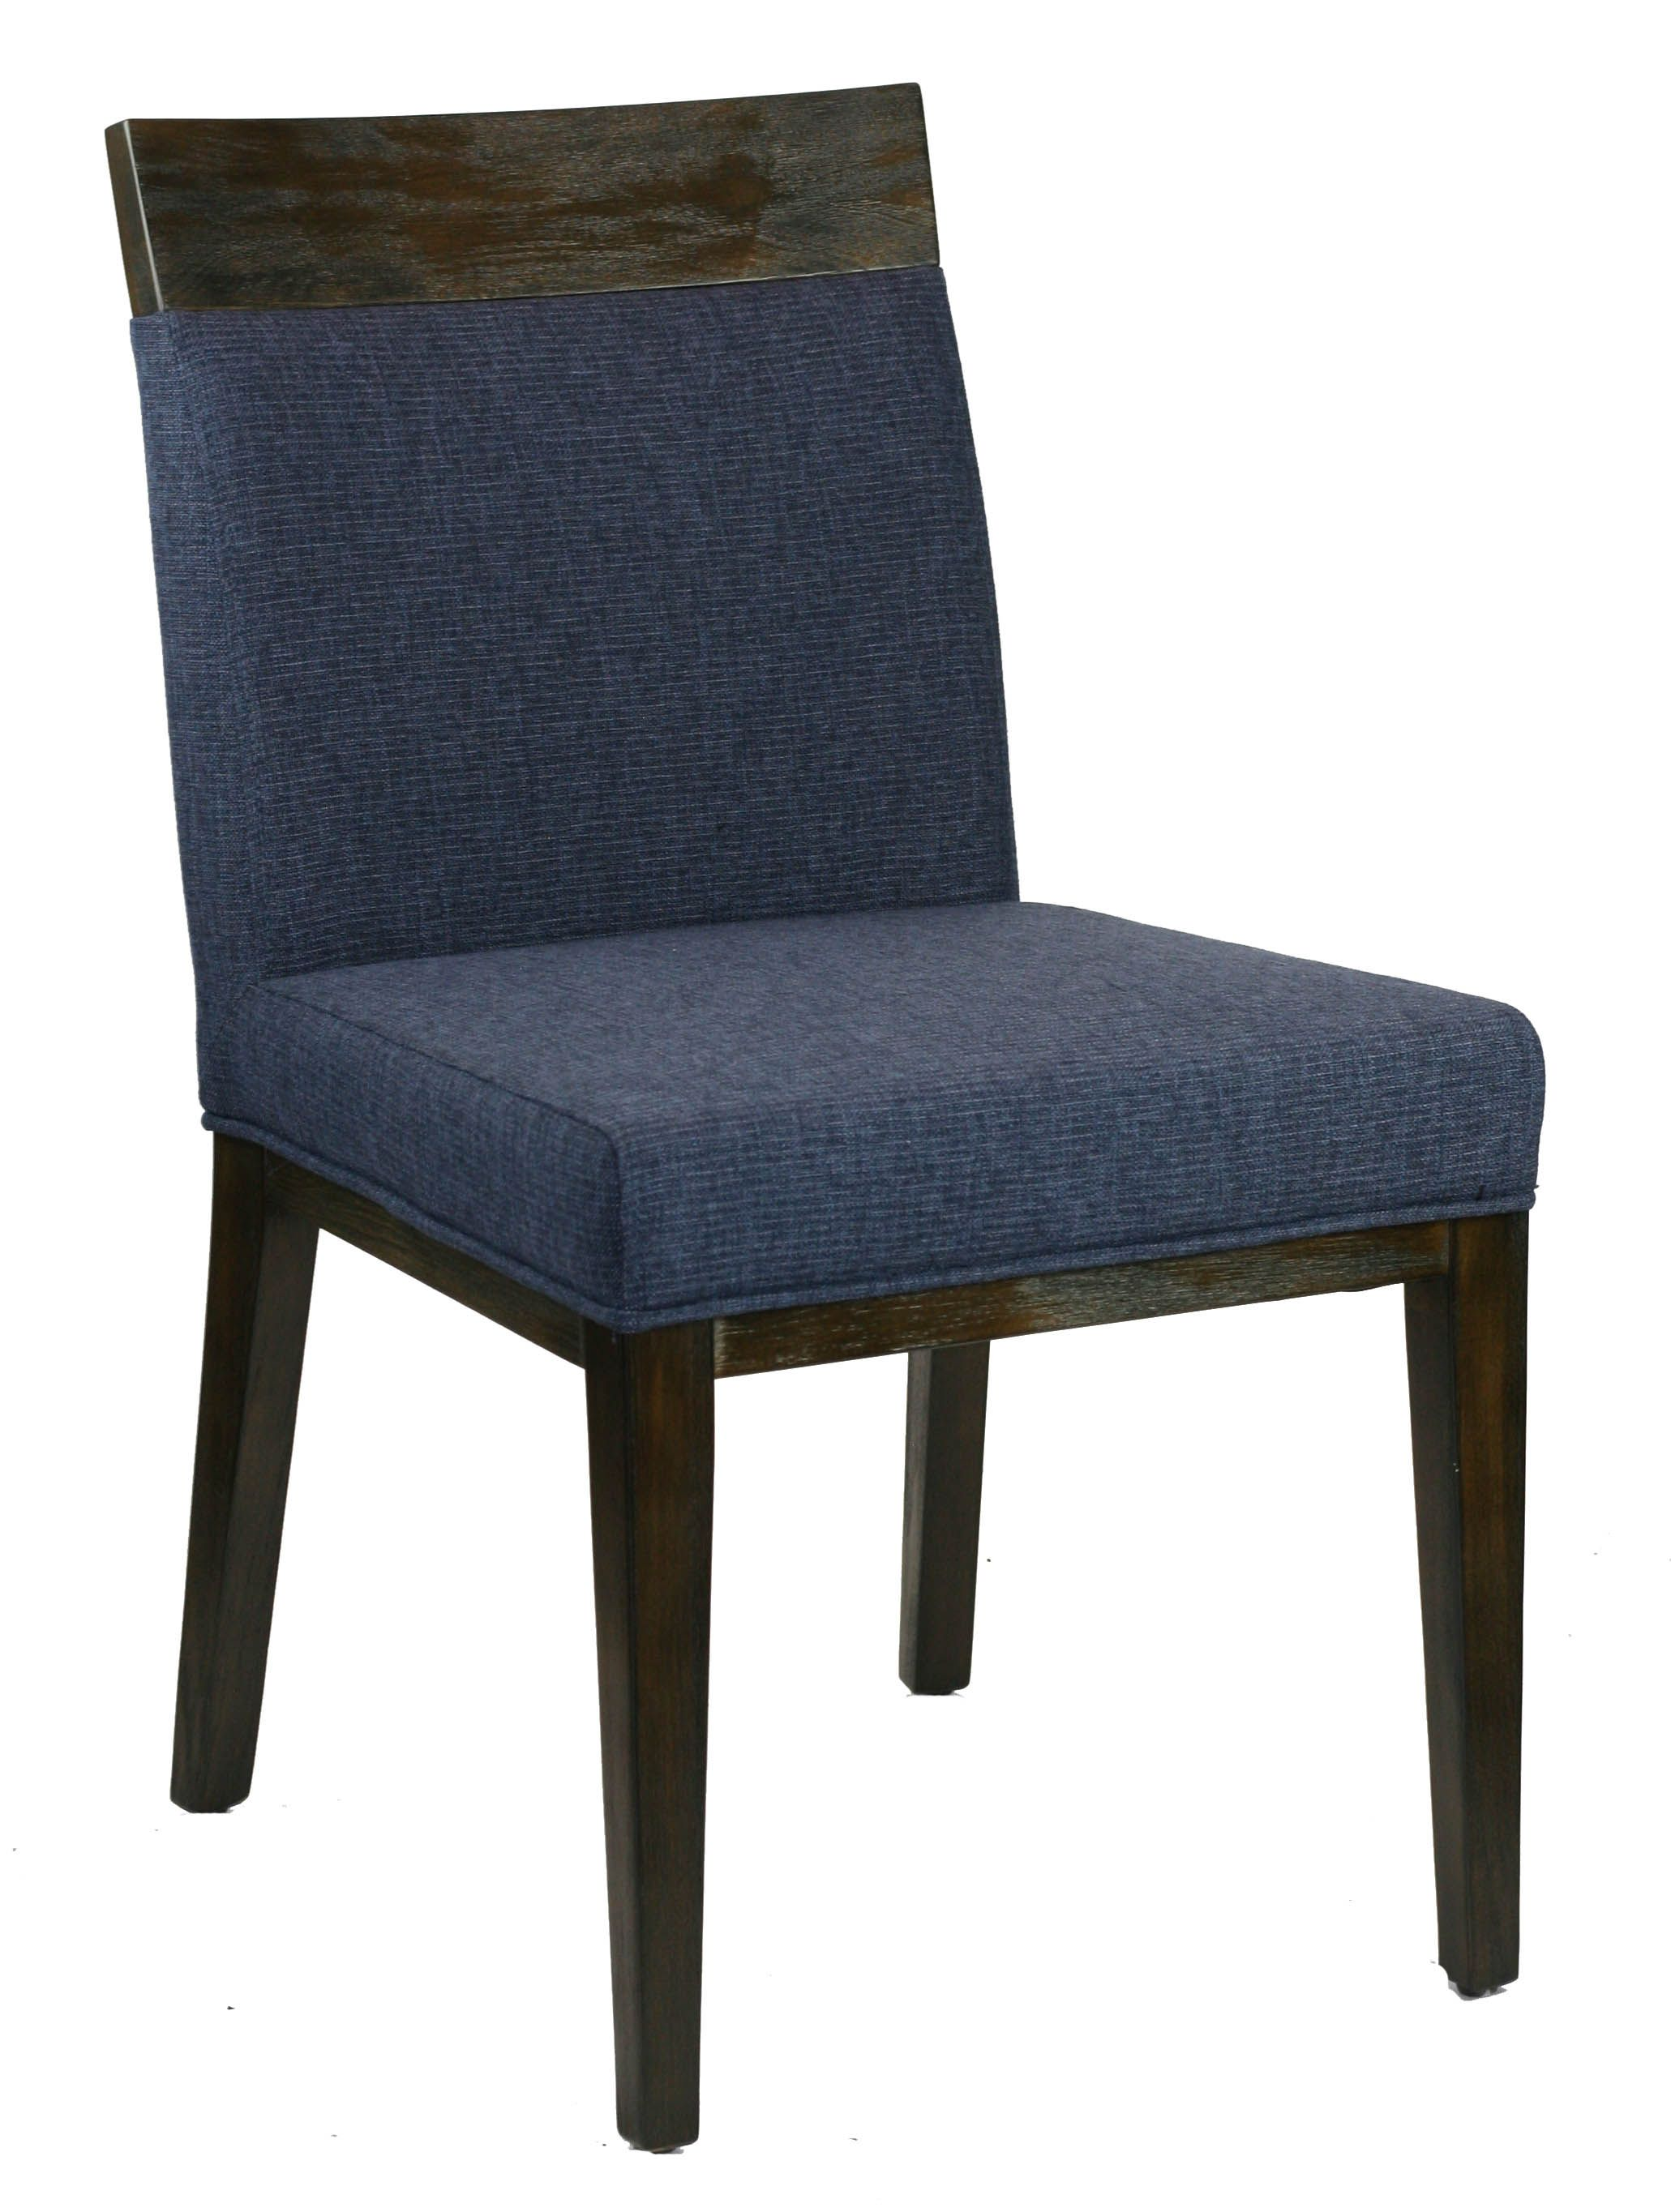 Best R 1012 Blue Fabric Dining Chair With Wood Frame Fabric 400 x 300